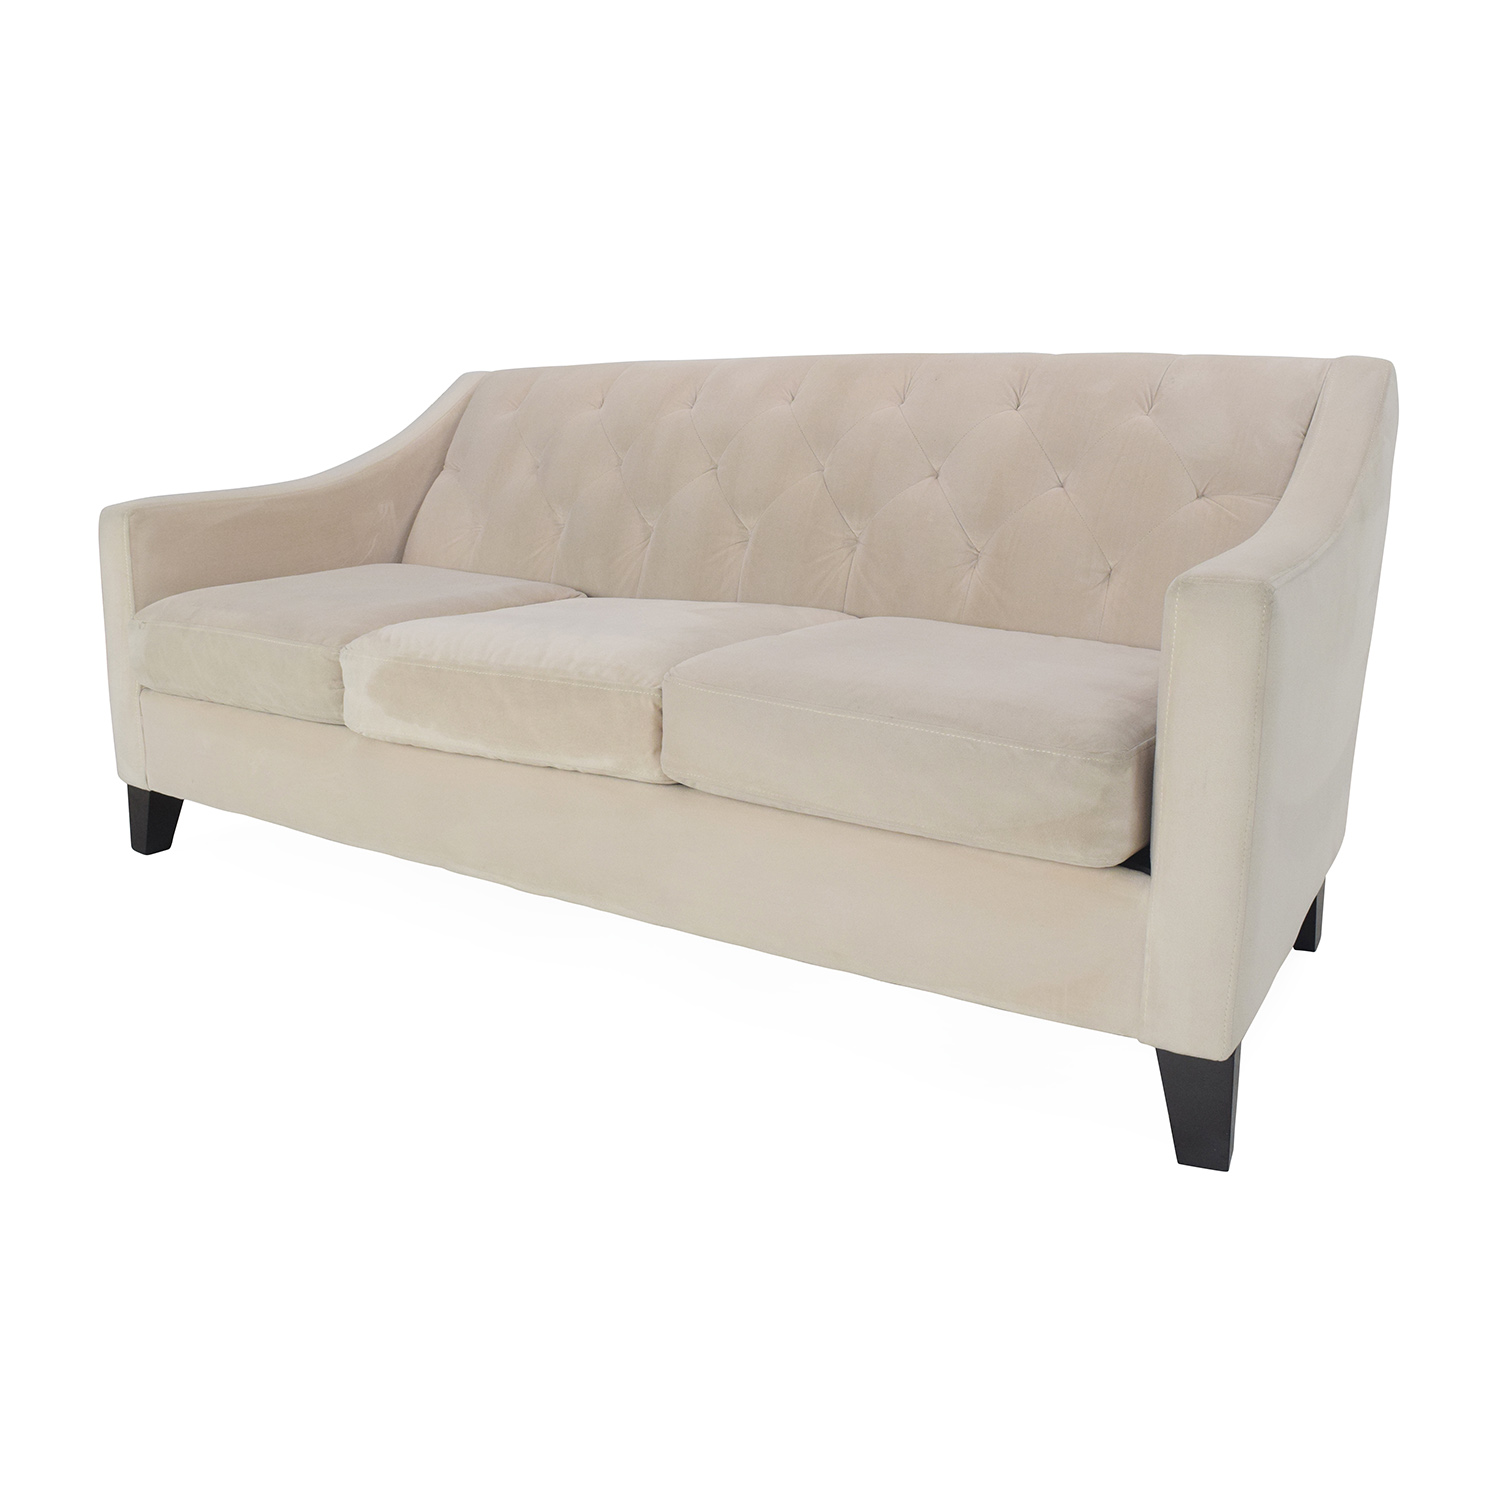 macy s furniture sofa tables modular sofas canada 58% off - max home macy's chloe tufted /